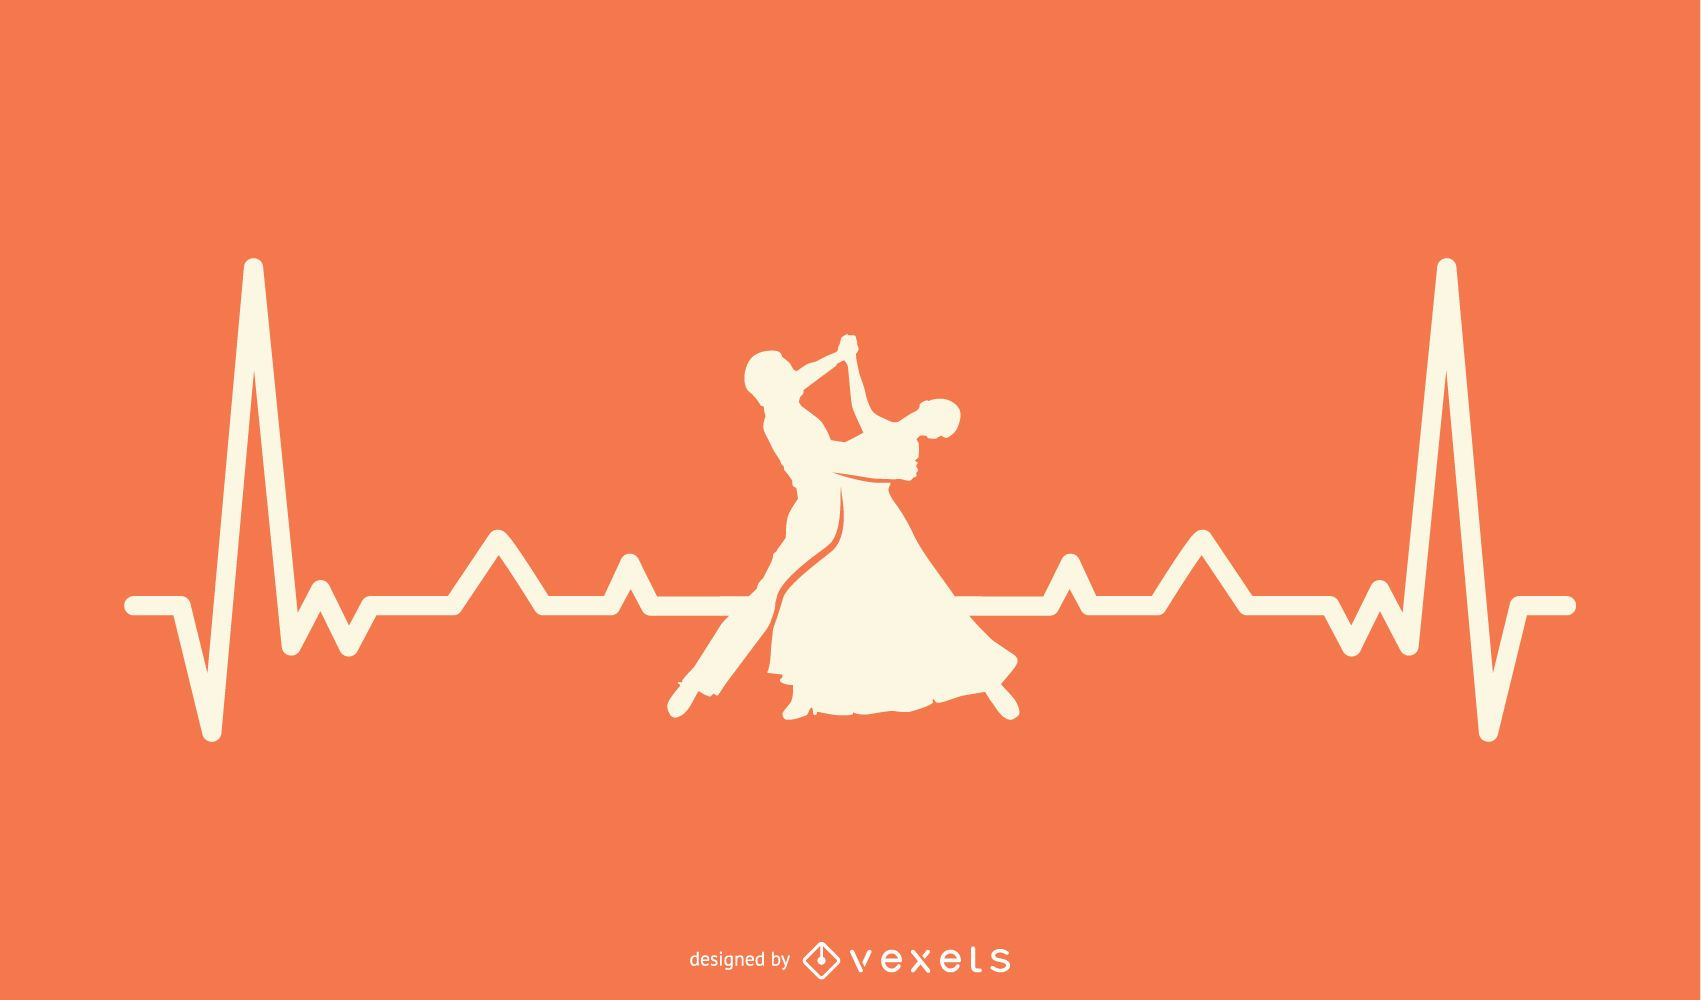 Heartbeat line with dancer illustration